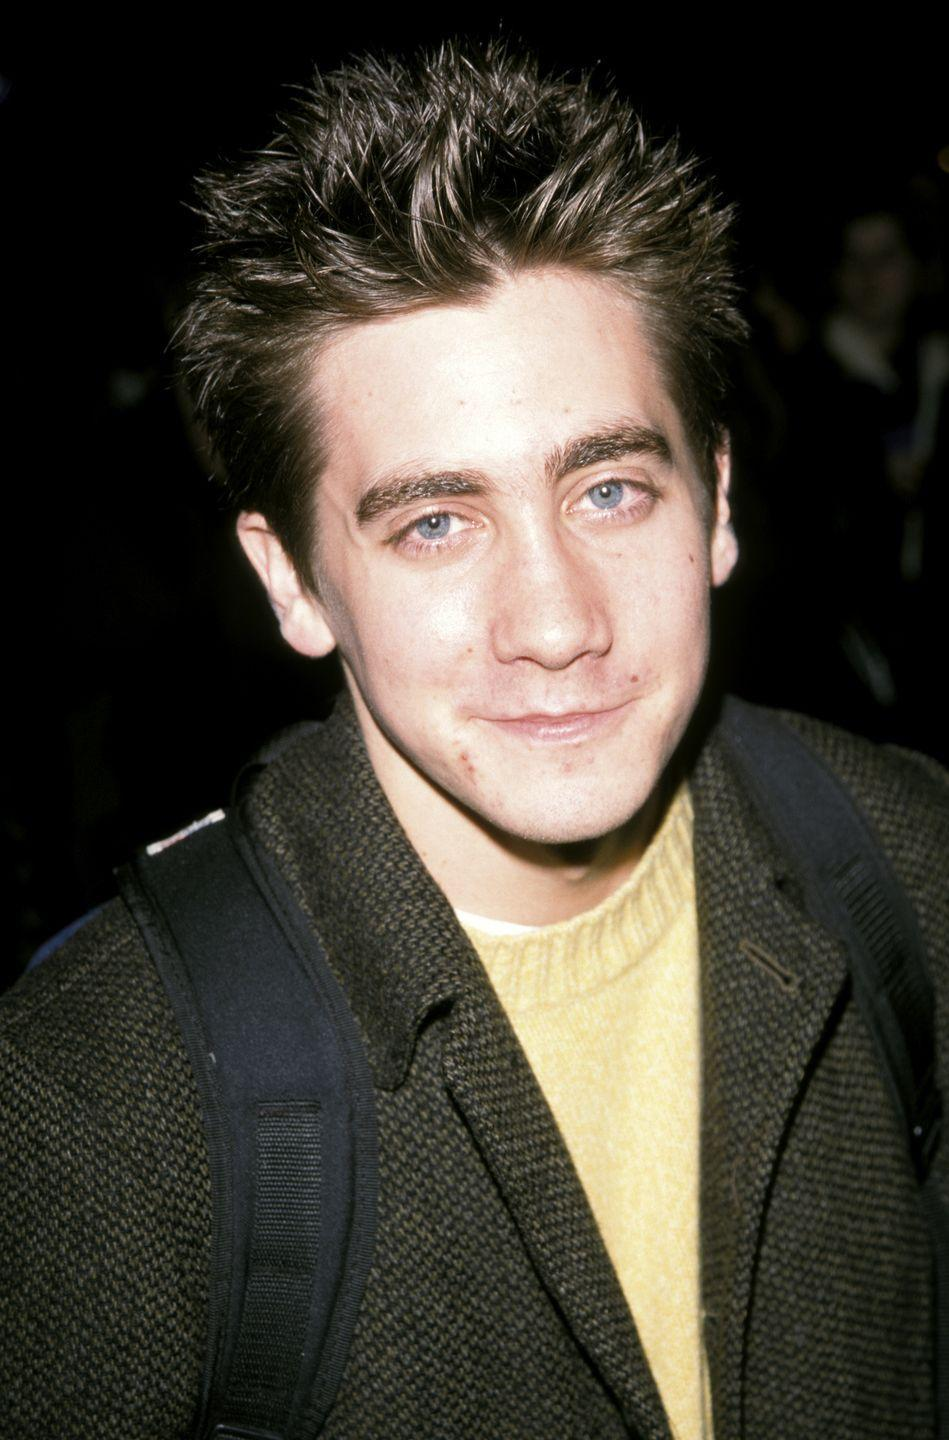 <p>The up-and-coming actor dropped by the red carpet at the premiere of <em>Cruel Intentions</em> back in 1999. Two years later, he would star in the cult classic film <em>Donnie Darko.</em></p>